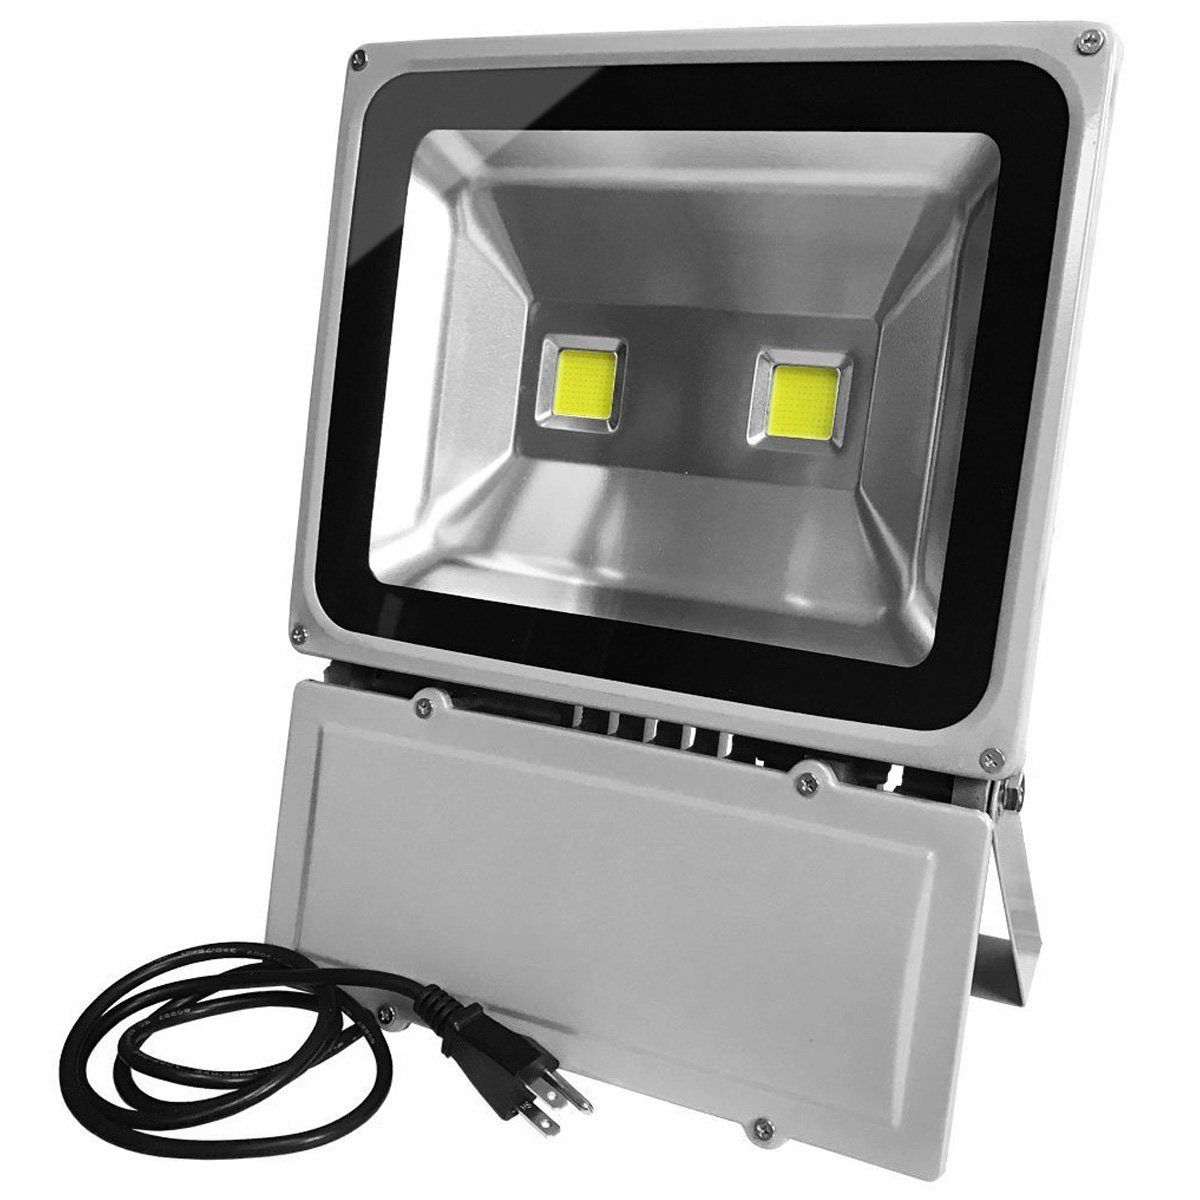 Glw 100w Led Outdoor Flood Light Super Bright 9000lm 6000k 110v 250w Hps Bulb Equivalent Waterproof Ip65 Security Work Light Us 3 Prong Plug Flood Lights Led Flood Lights Outdoor Flood Lights